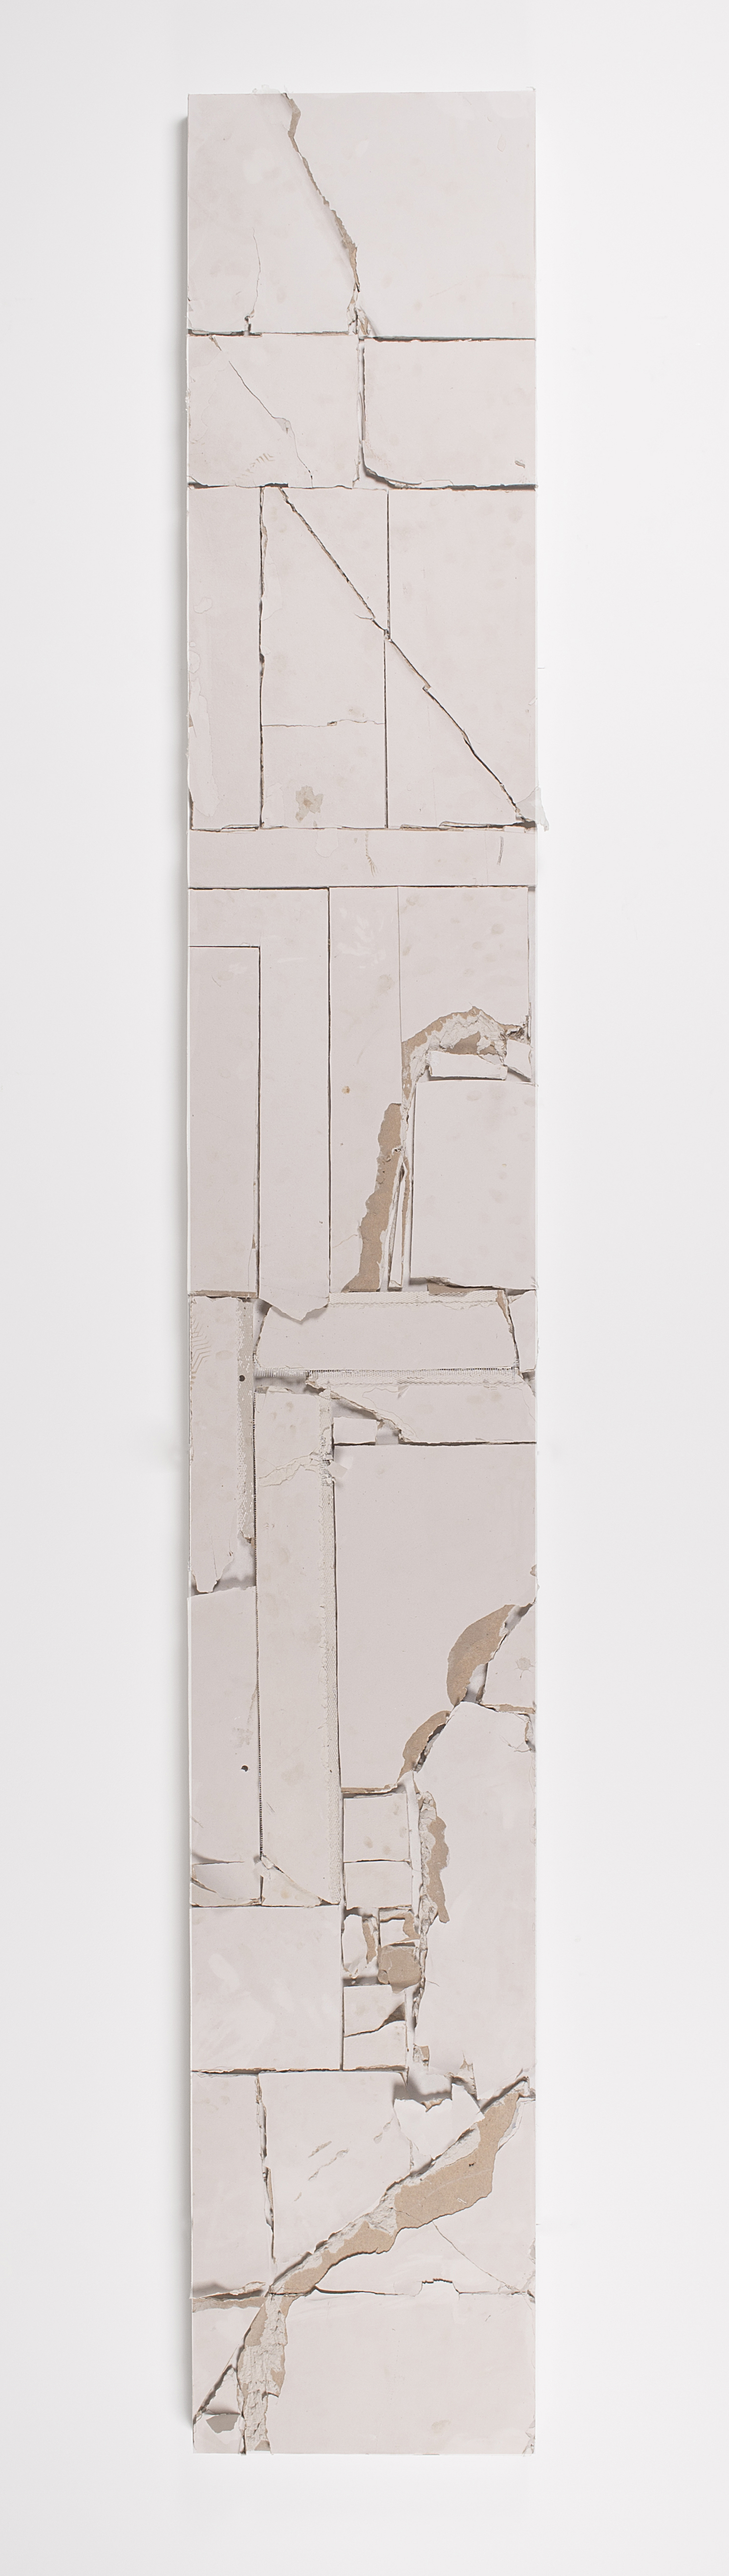 Pablo Rasgado. <em> Unfolded Architecture (M HKA 8)</em>, 2017.  Acrylic on drywall, 118 1/8 x 19 1/4 x 2 9/16 inches